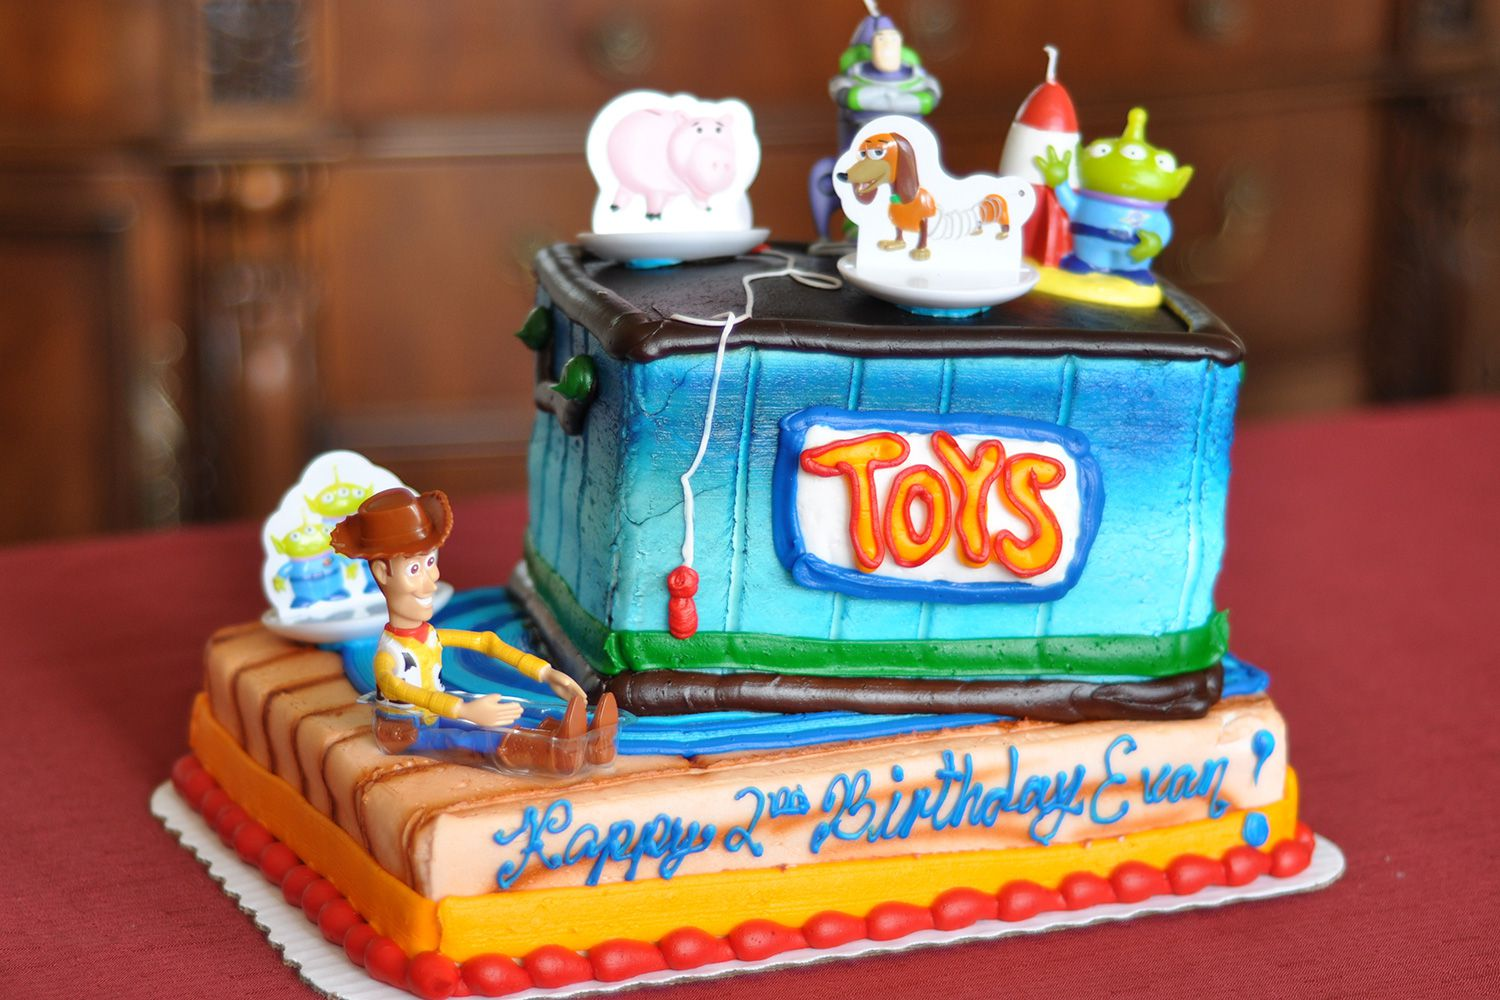 8 9 Toys For Birthdays : How to throw a toy story birthday party